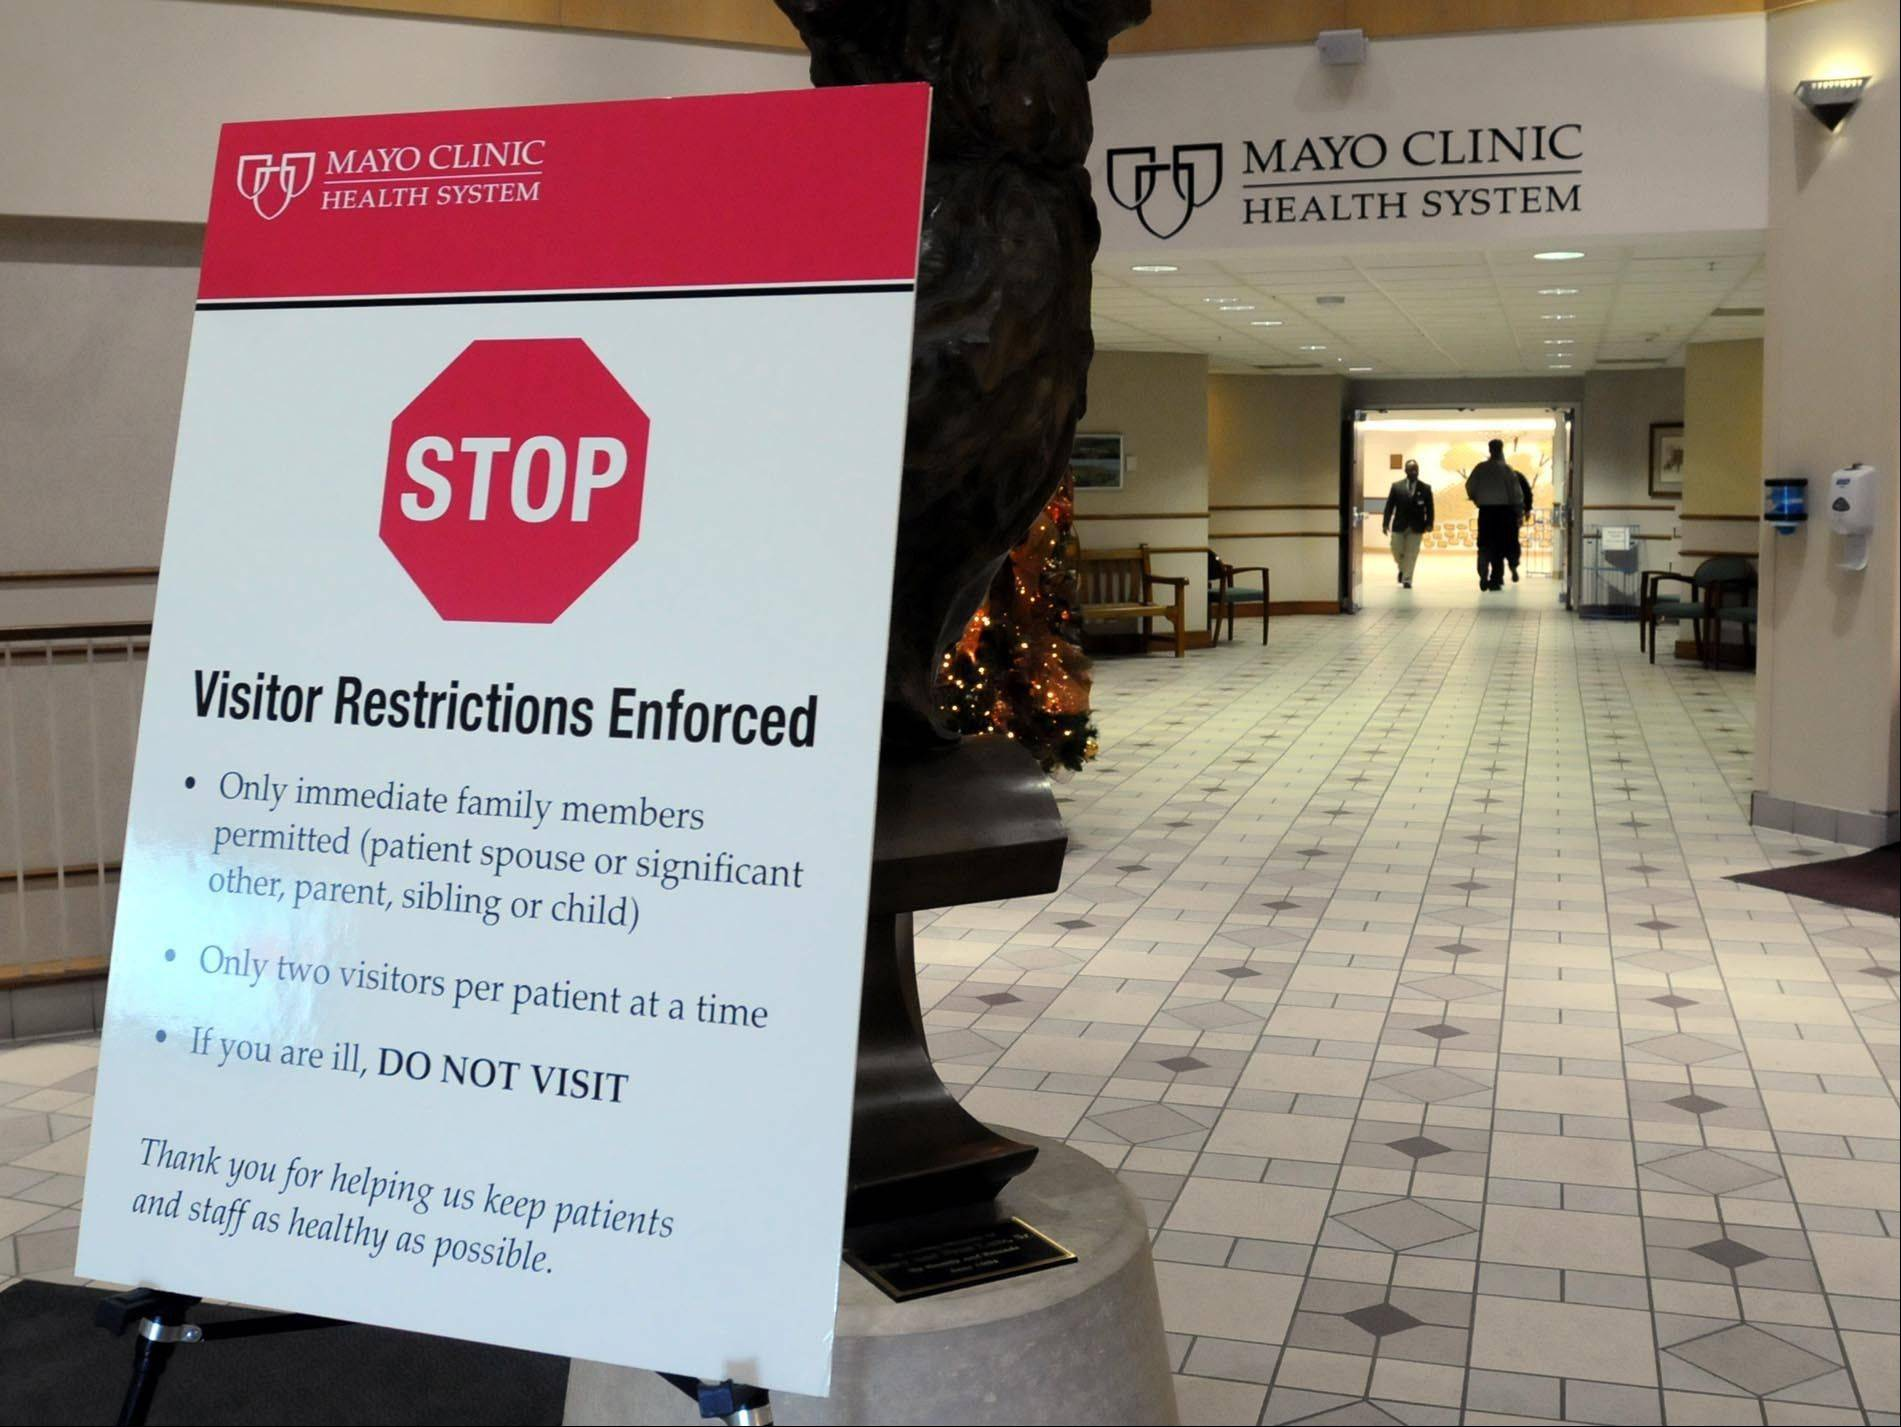 A sign in the entry of the the Mayo Clinic Health System hospital in Mankato, Minn., spells out visitor restrictions that have been implemented to curb the spread of influenza. Mayo Health Systems recently put the restrictive policy in place in 15 hospitals in southern Minnesota and South Dakota because of the flu outbreak.